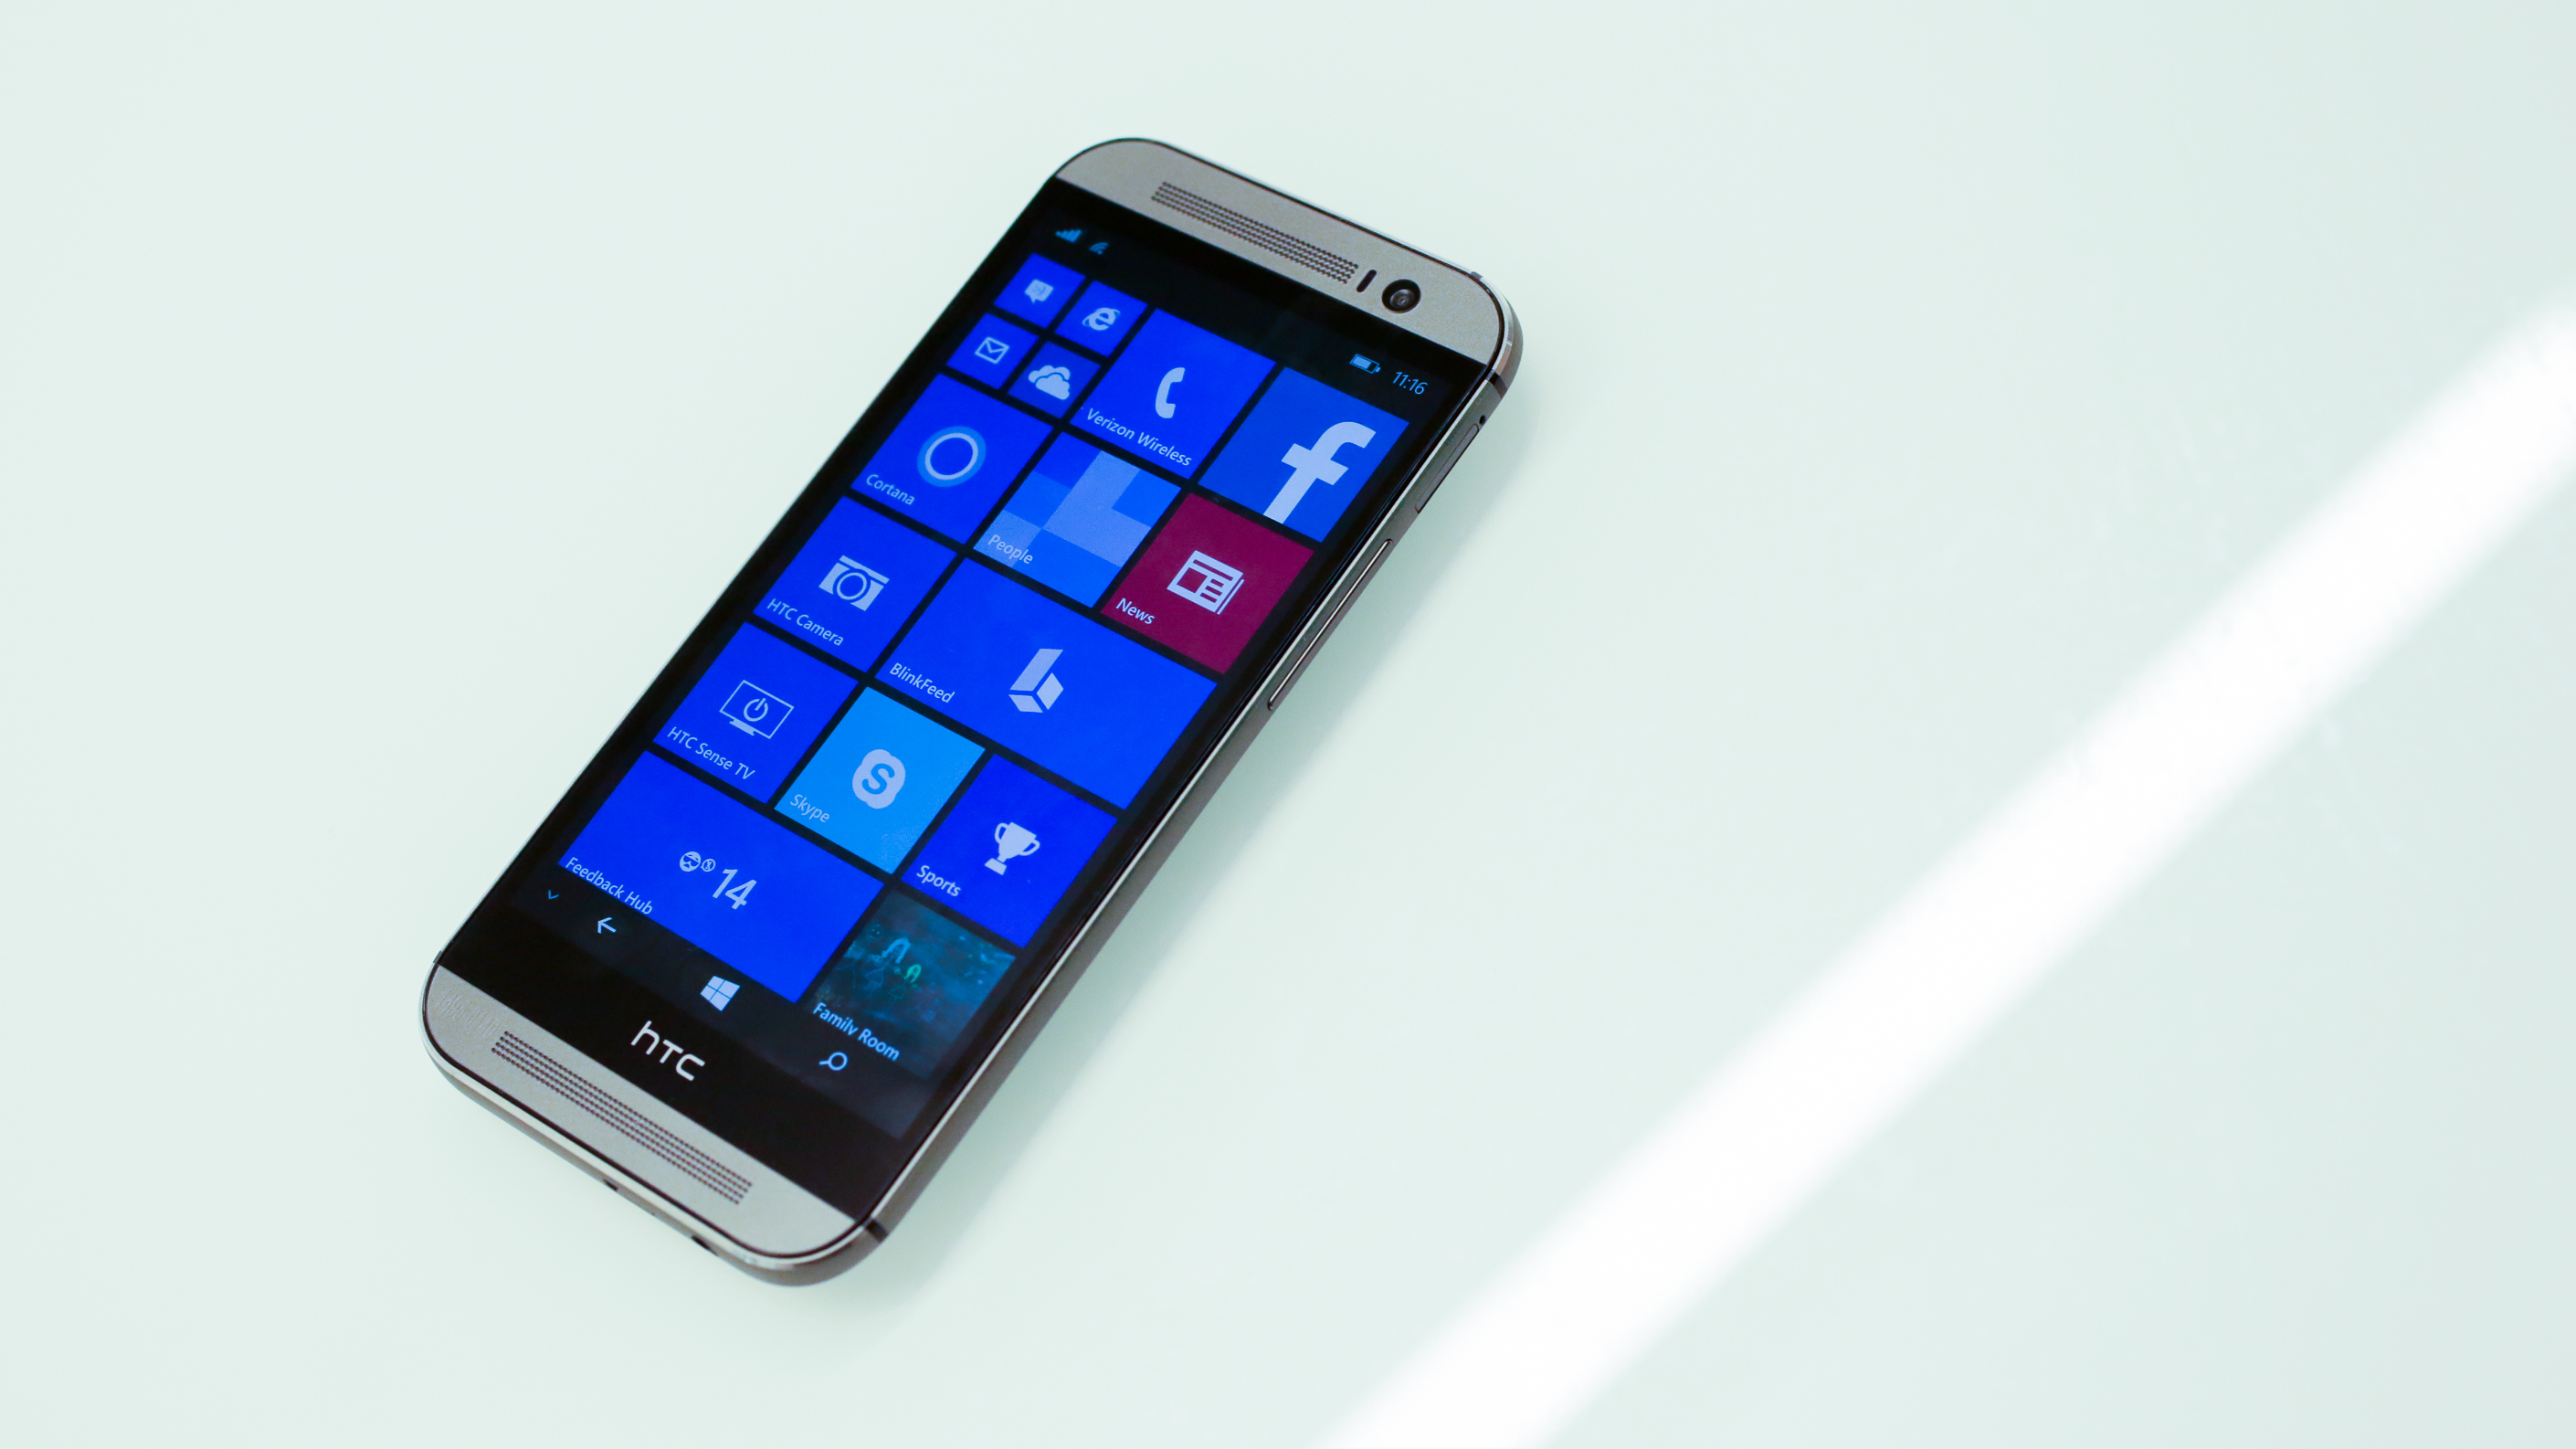 htc-one-m8-for-windows-product-photos11.jpg